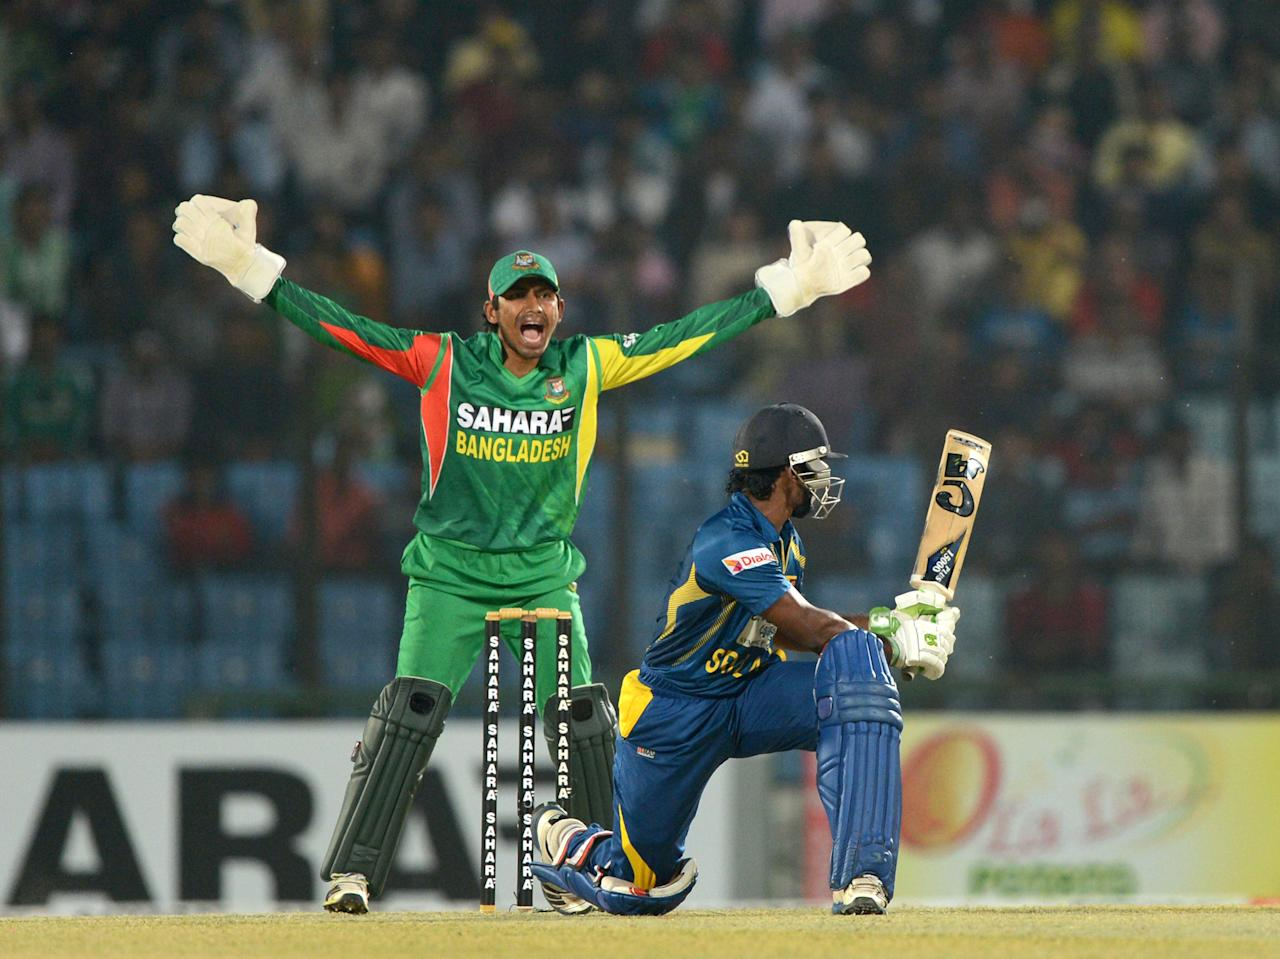 Bangladesh wicketkeeper Anamul Haque (L) makes asuccessful appeal for the wicket of Sri Lankan batsman Kusal Perera (R) during the second T20 cricket match between Bangladesh and Sri Lanka at The Zahur Ahmed Chowdhury Stadium in Chittagong on February 14, 2014.  AFP PHOTO/ Munir uz ZAMAN